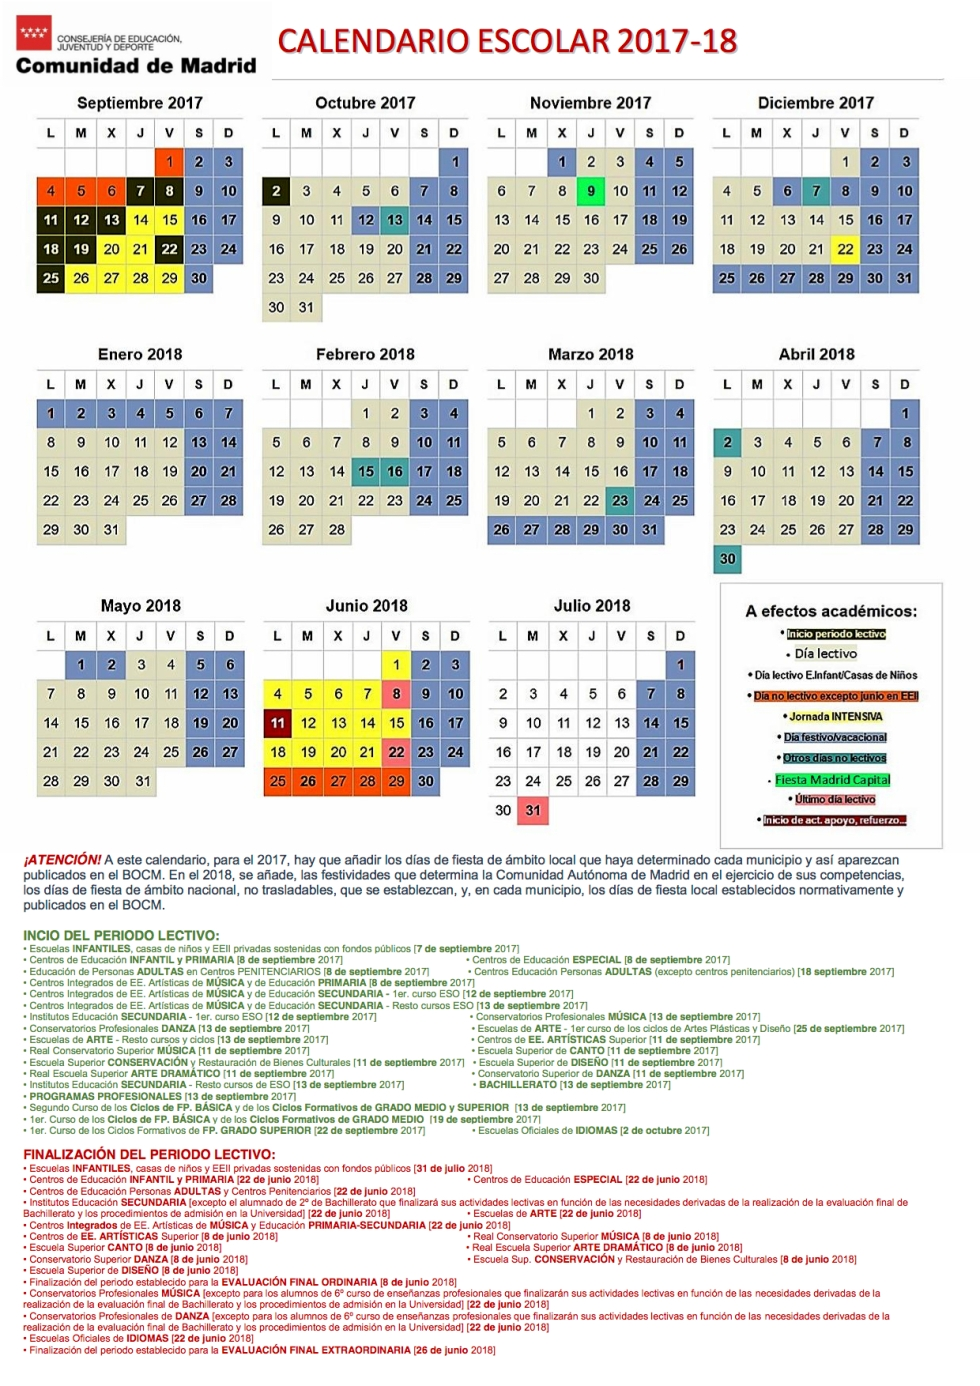 Calendario Escolar 2017 - 2018 Madrid